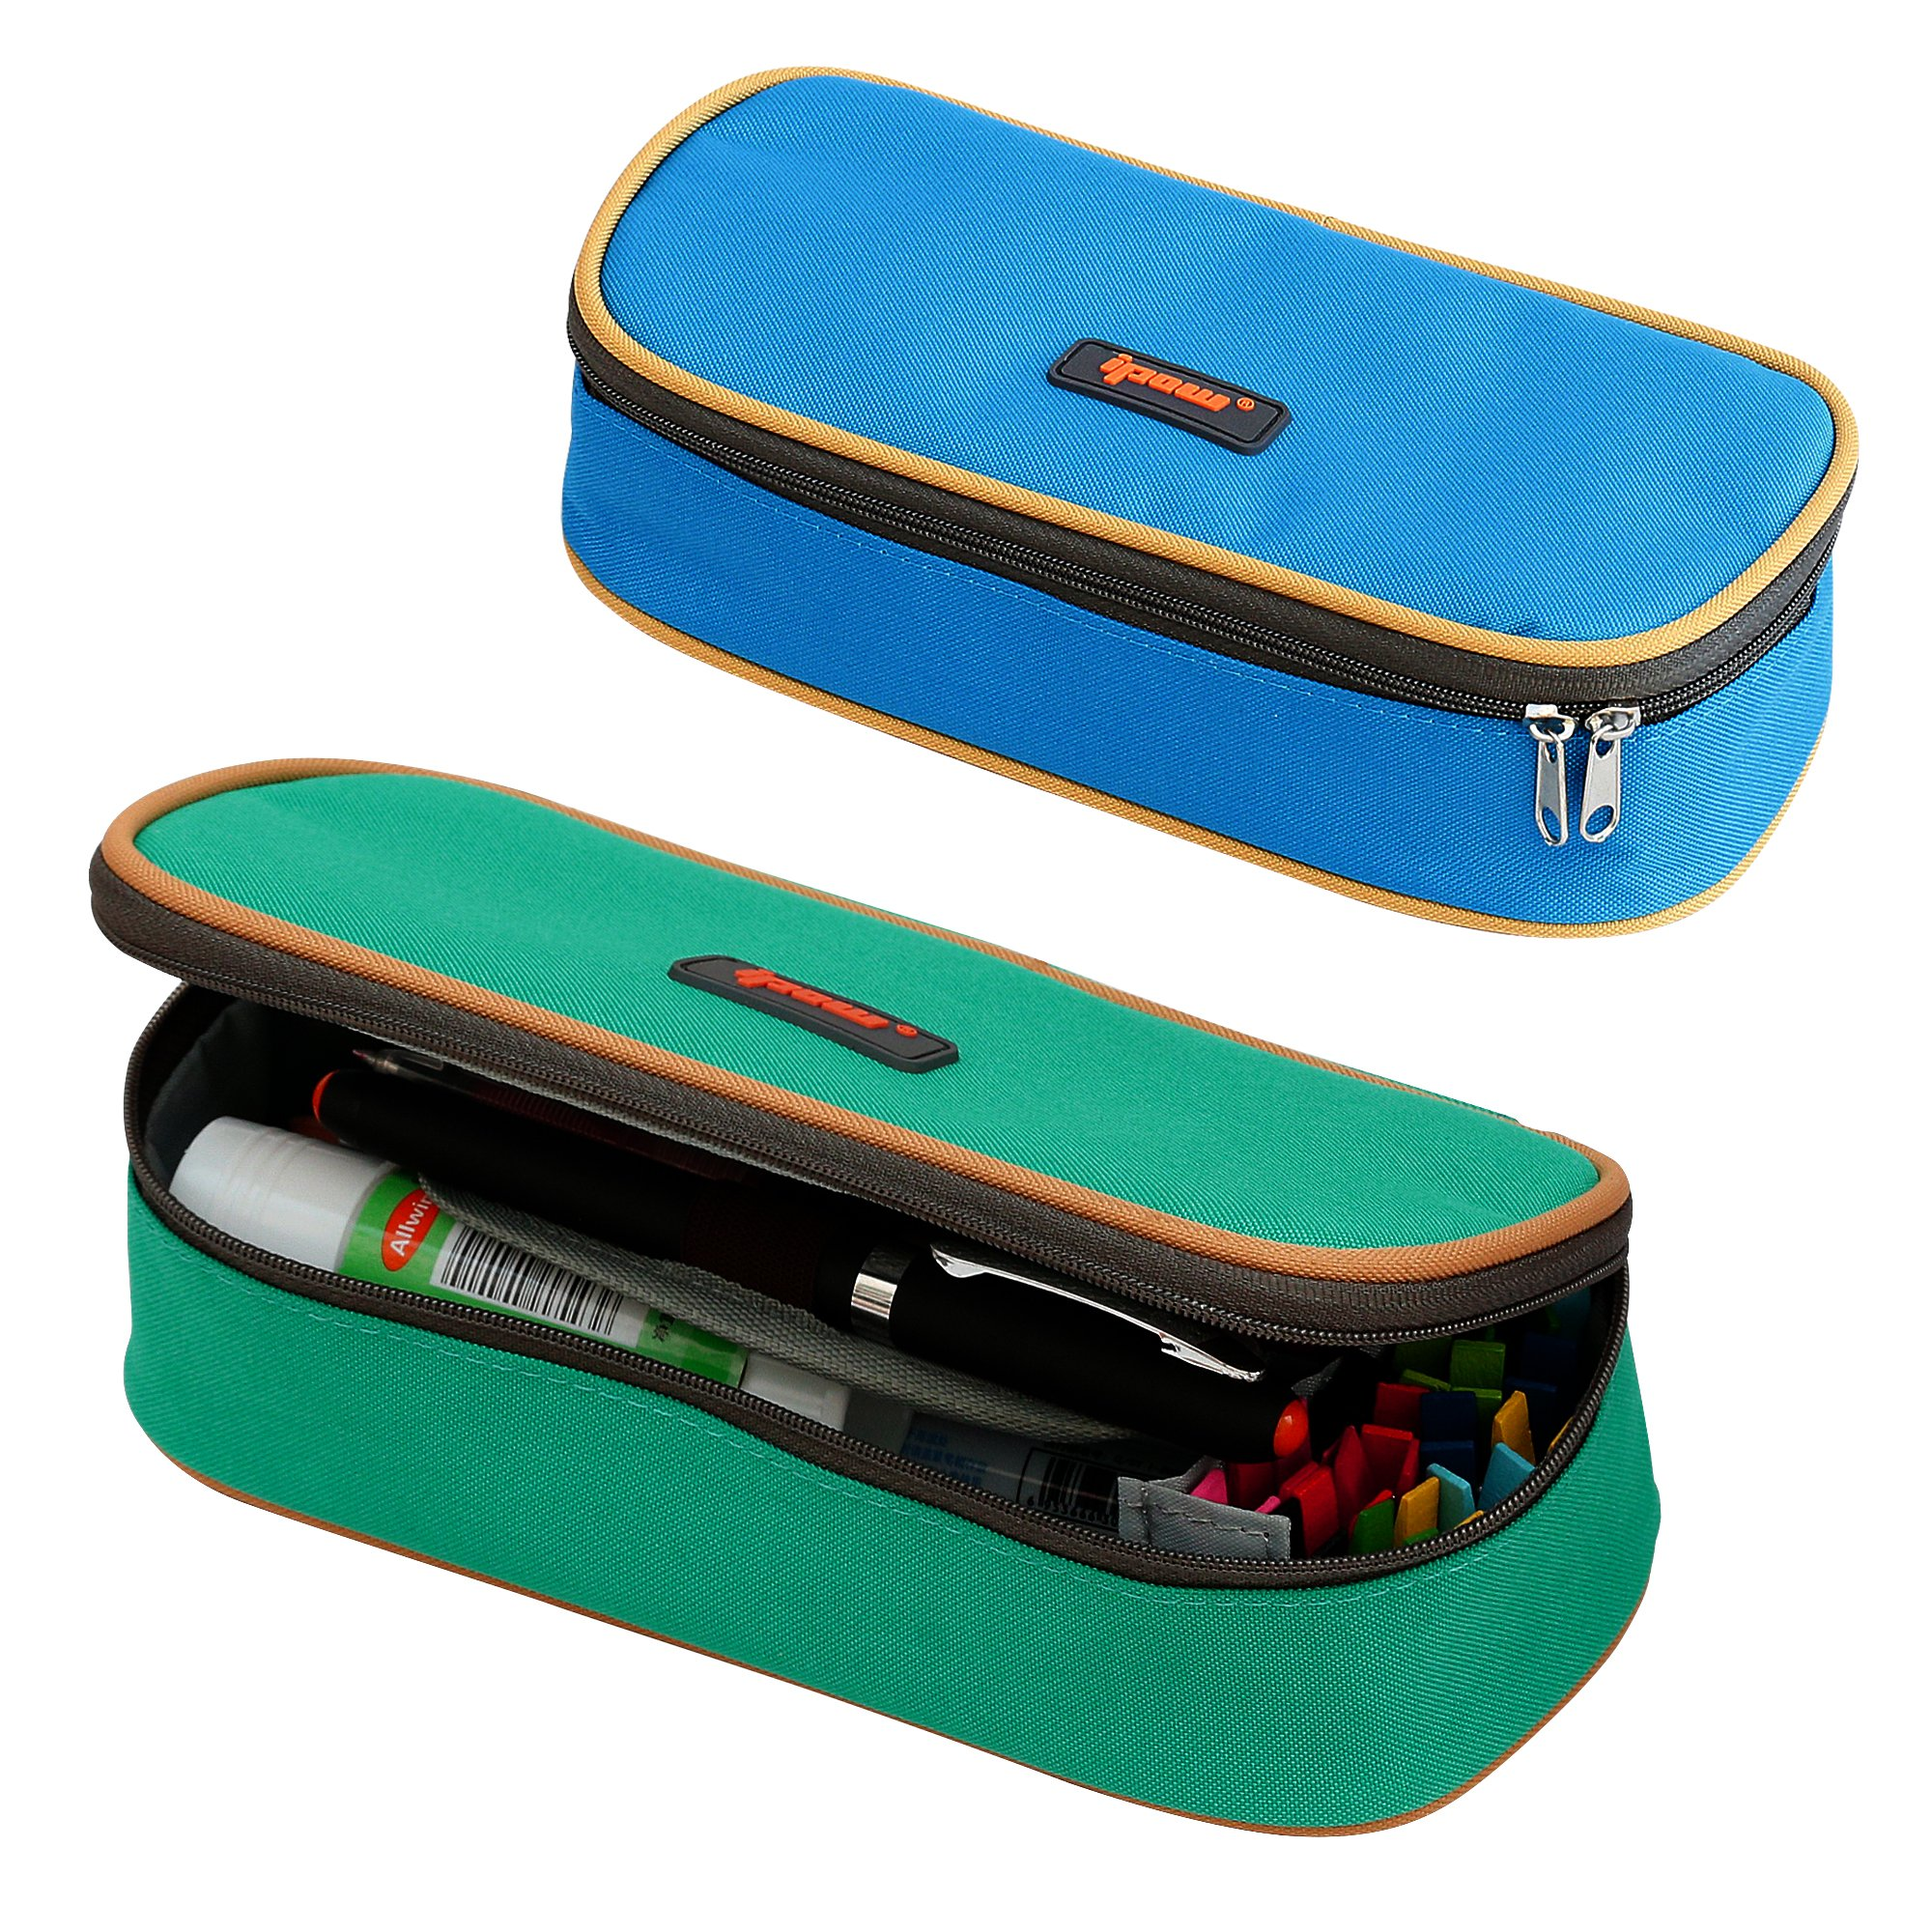 2 Pack(Blue+Green Colors) Pencil Case,IPOW Homecube Big Capacity Pen Bag Makeup Pouch Durable Students Stationery With Double Zipper